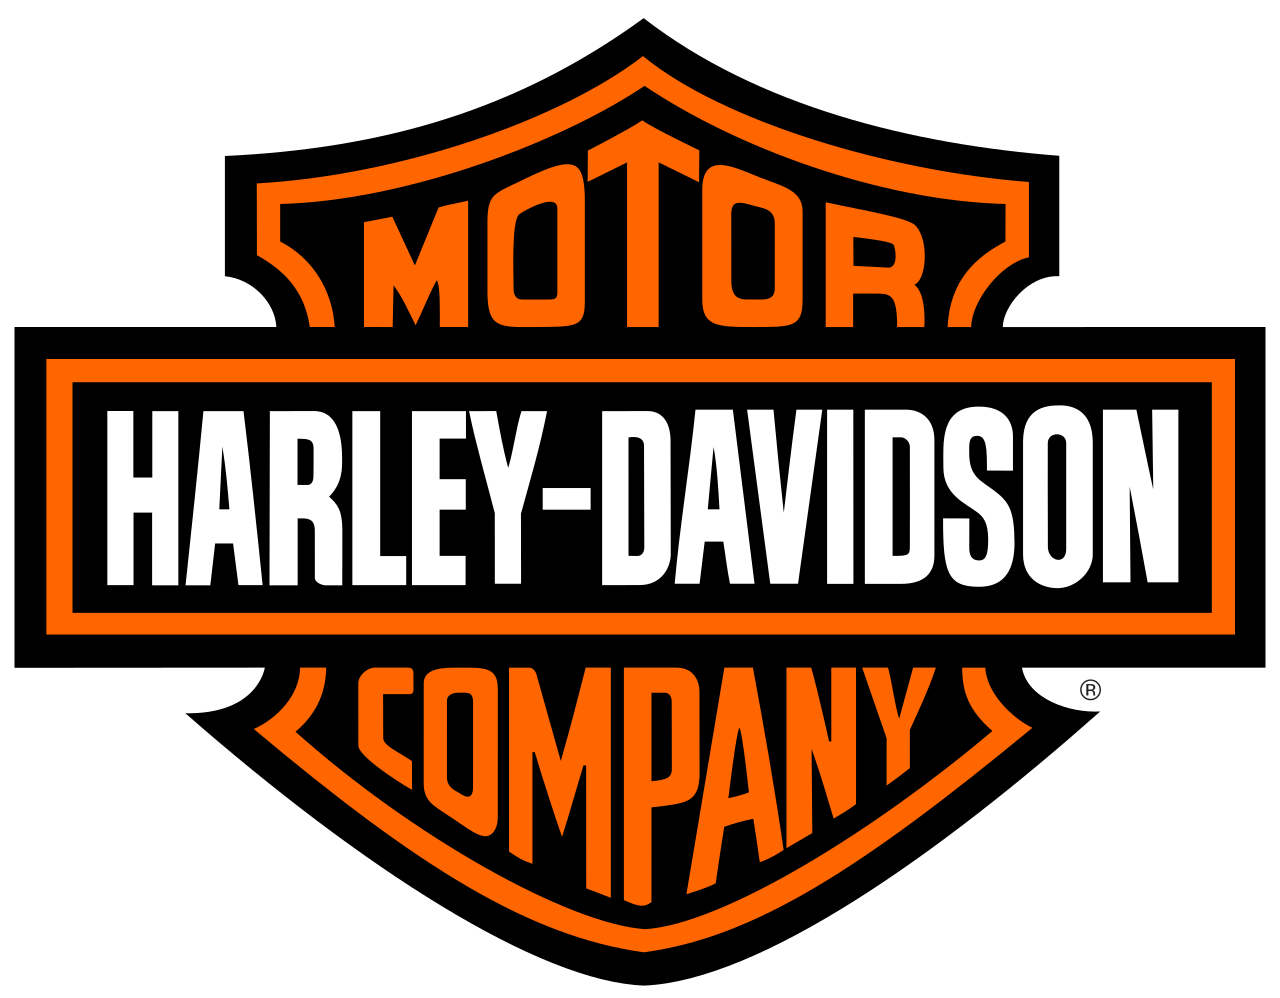 Harley sales miss estimates as strong dollar pinches global push